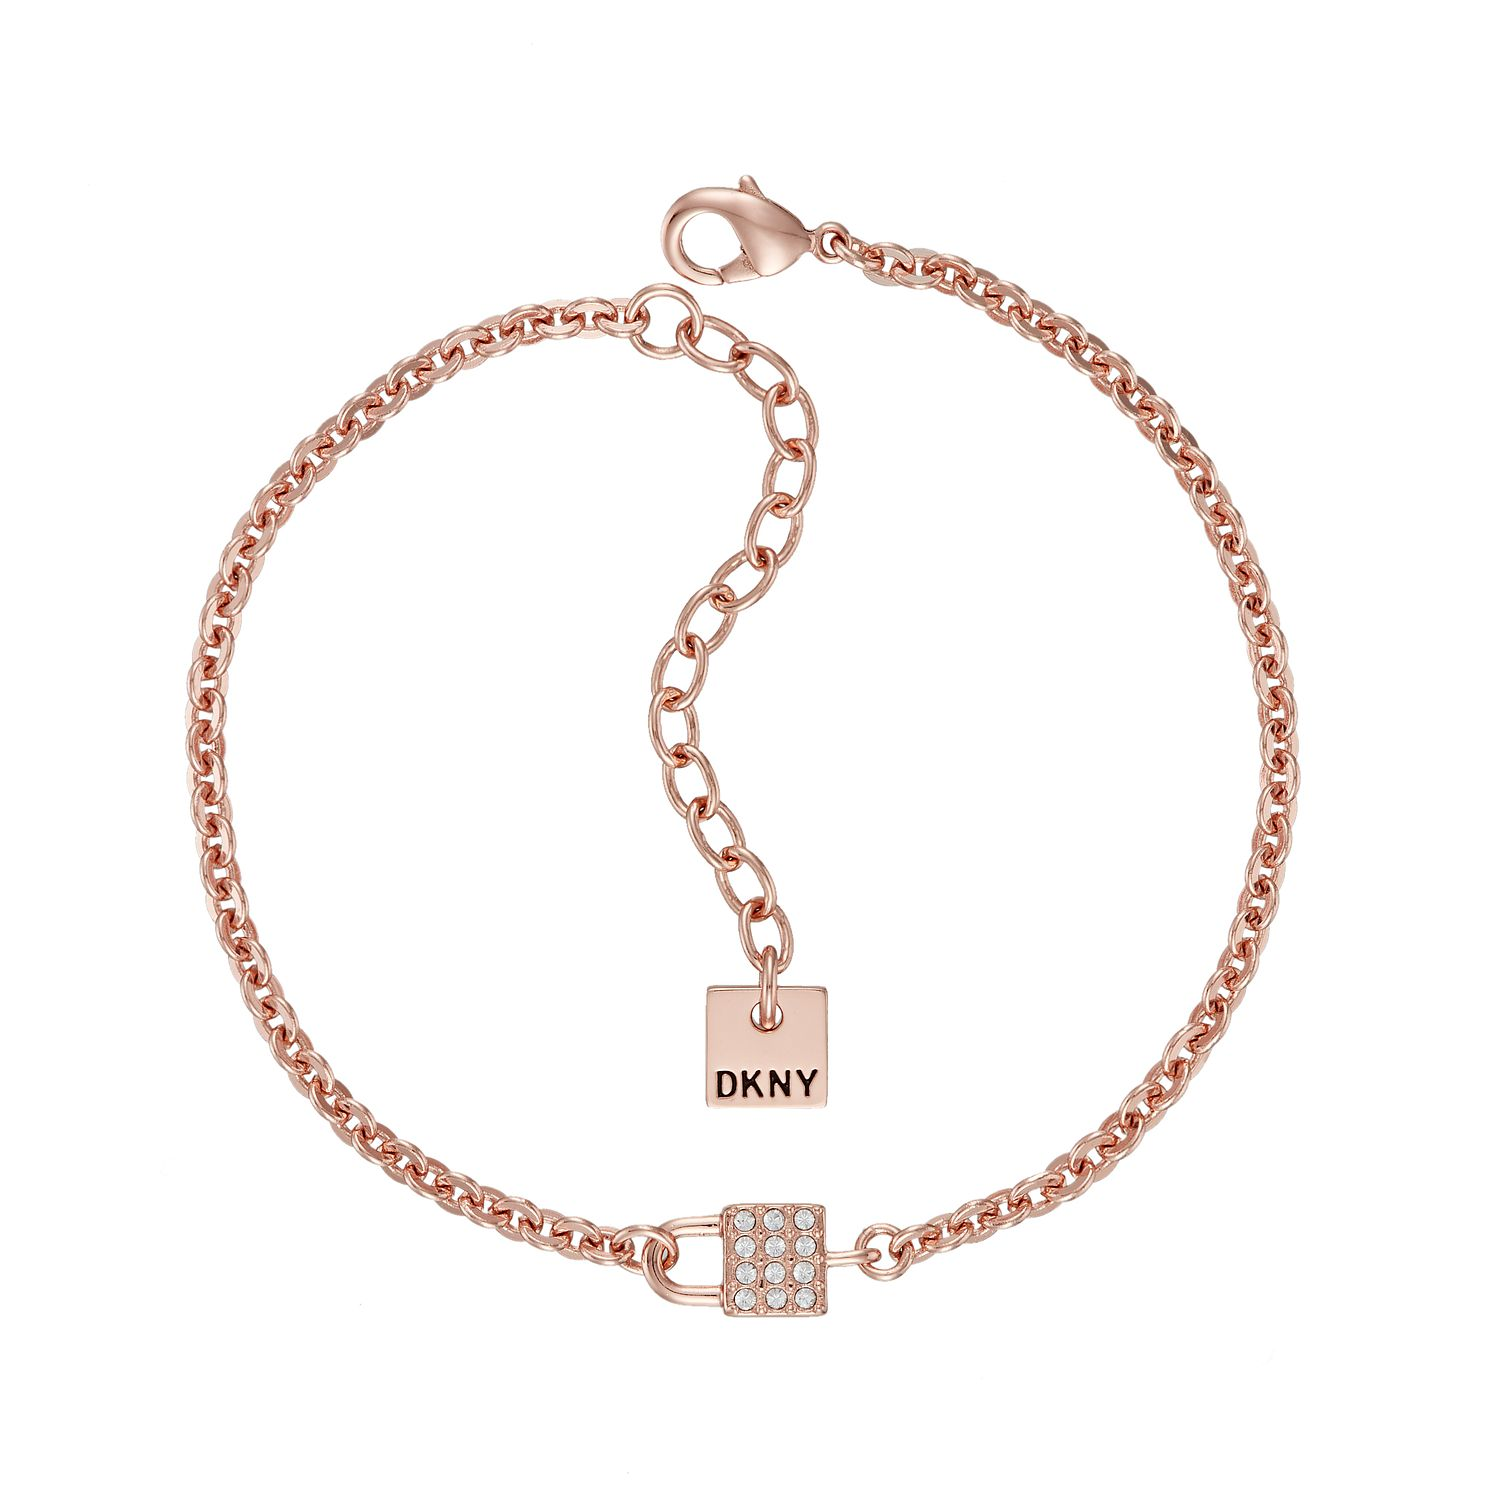 DKNY Small Pave Lock Rose Gold Plated Bracelet - Product number 5888859